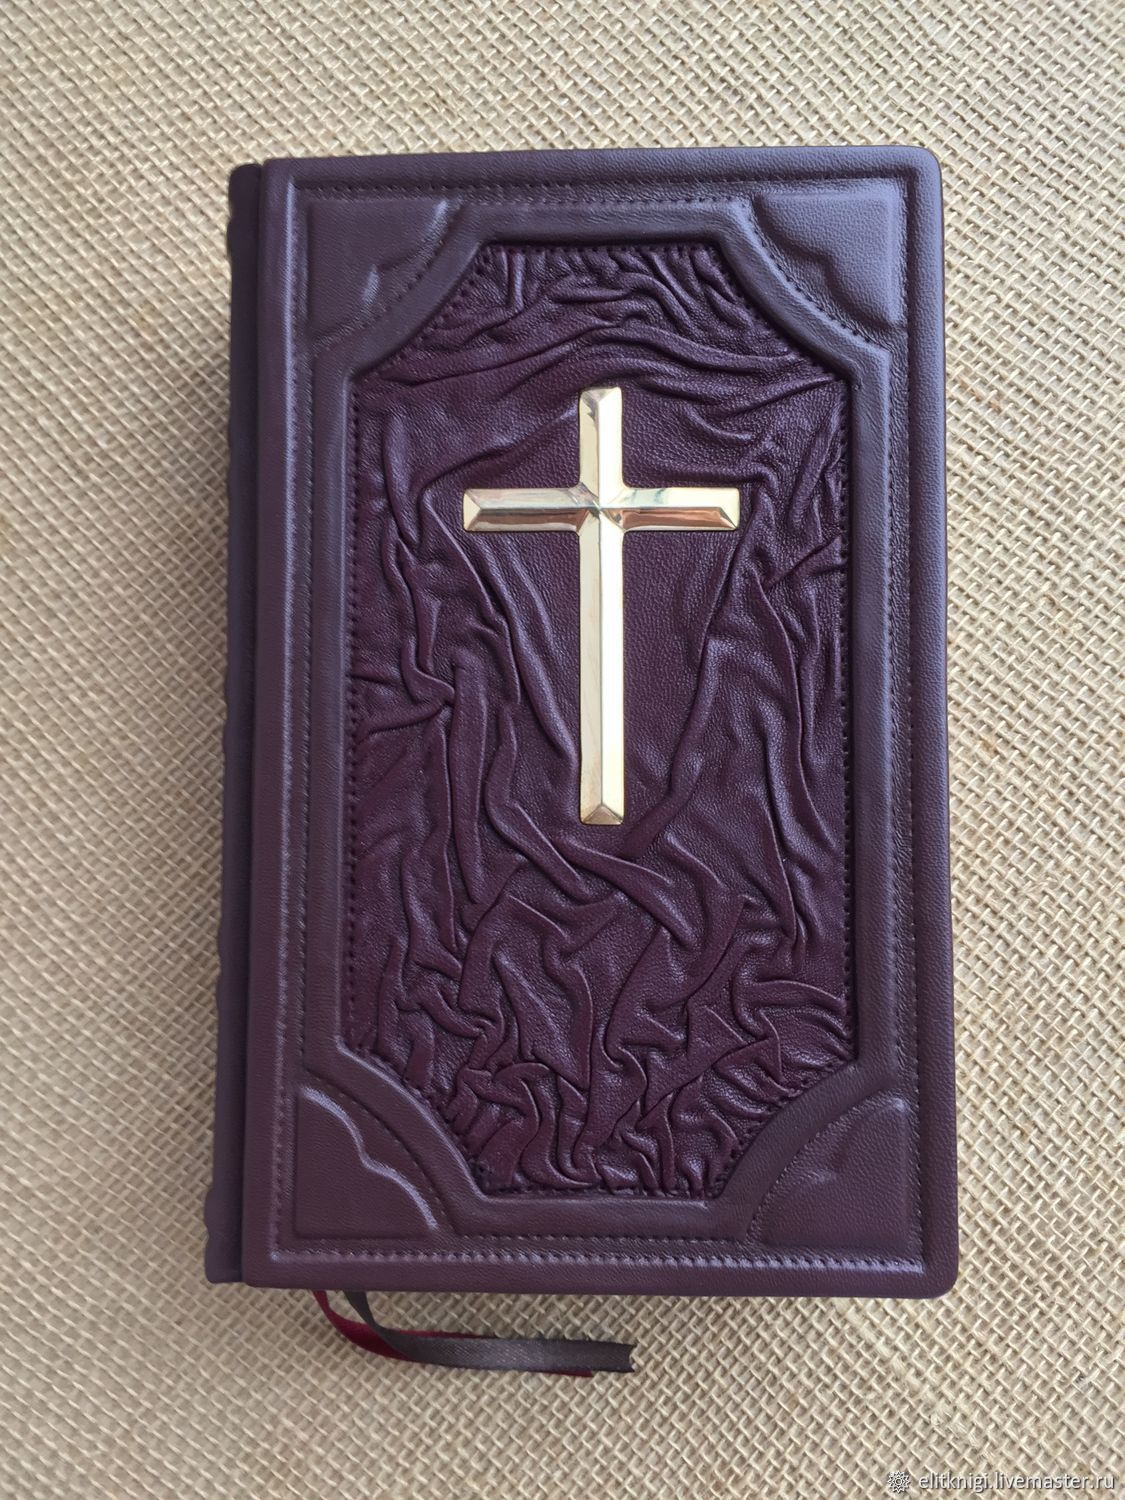 The Bible Getse - book gift bound in leather, Vintage books, Moscow,  Фото №1